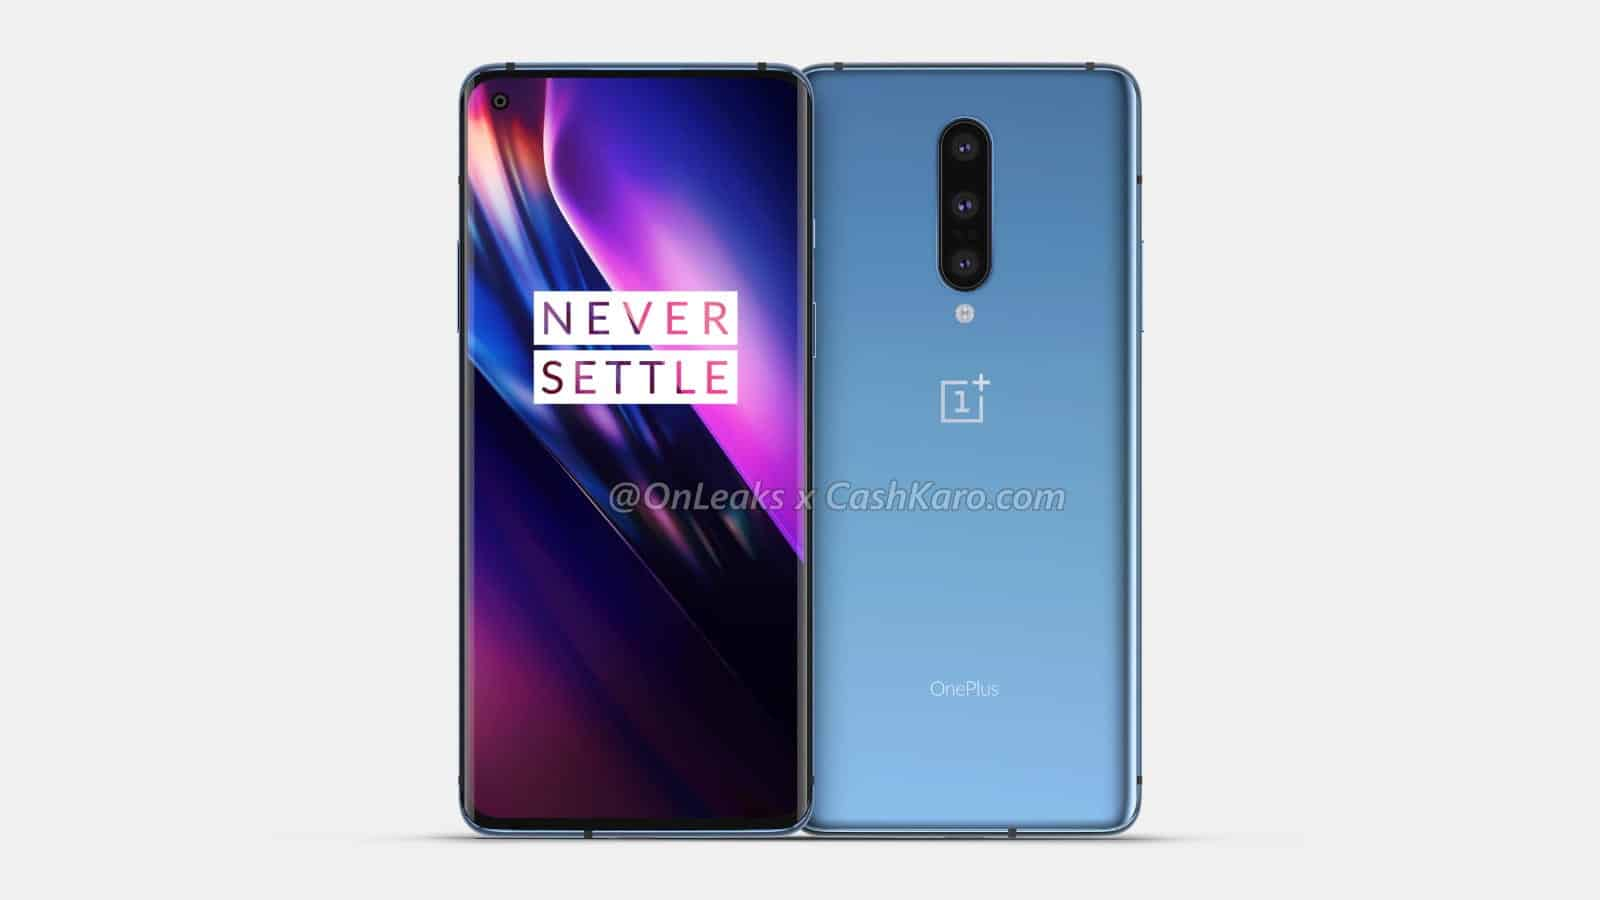 00 ONEPLUS 8 front and back OnLeaks CashKaro